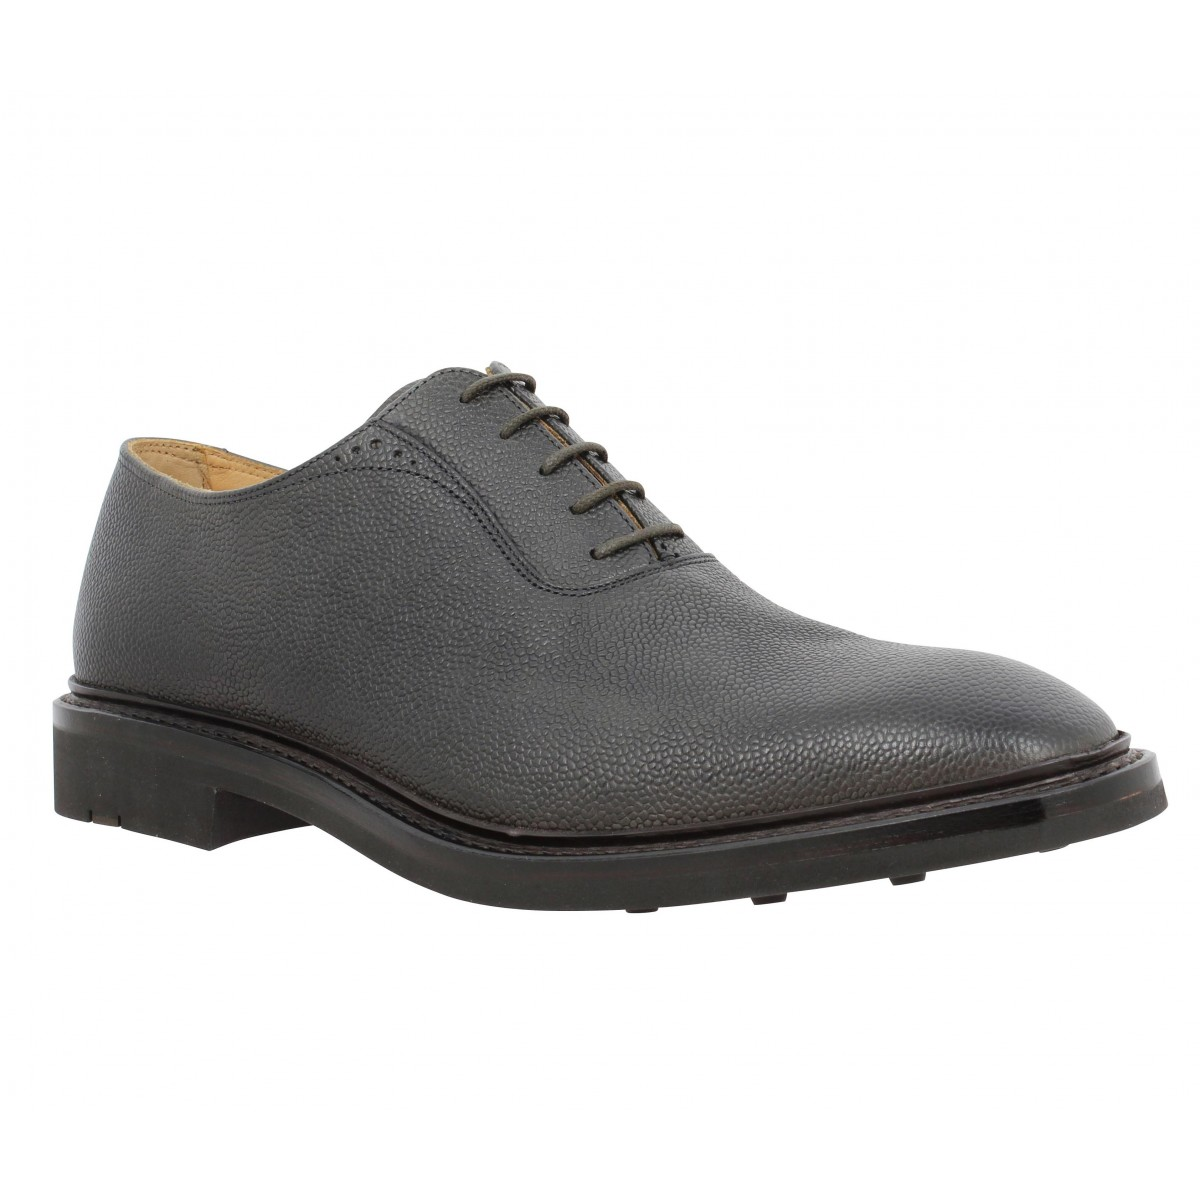 Chaussures à lacets HESCHUNG Itaya Bis cuir graine Homme Cendre